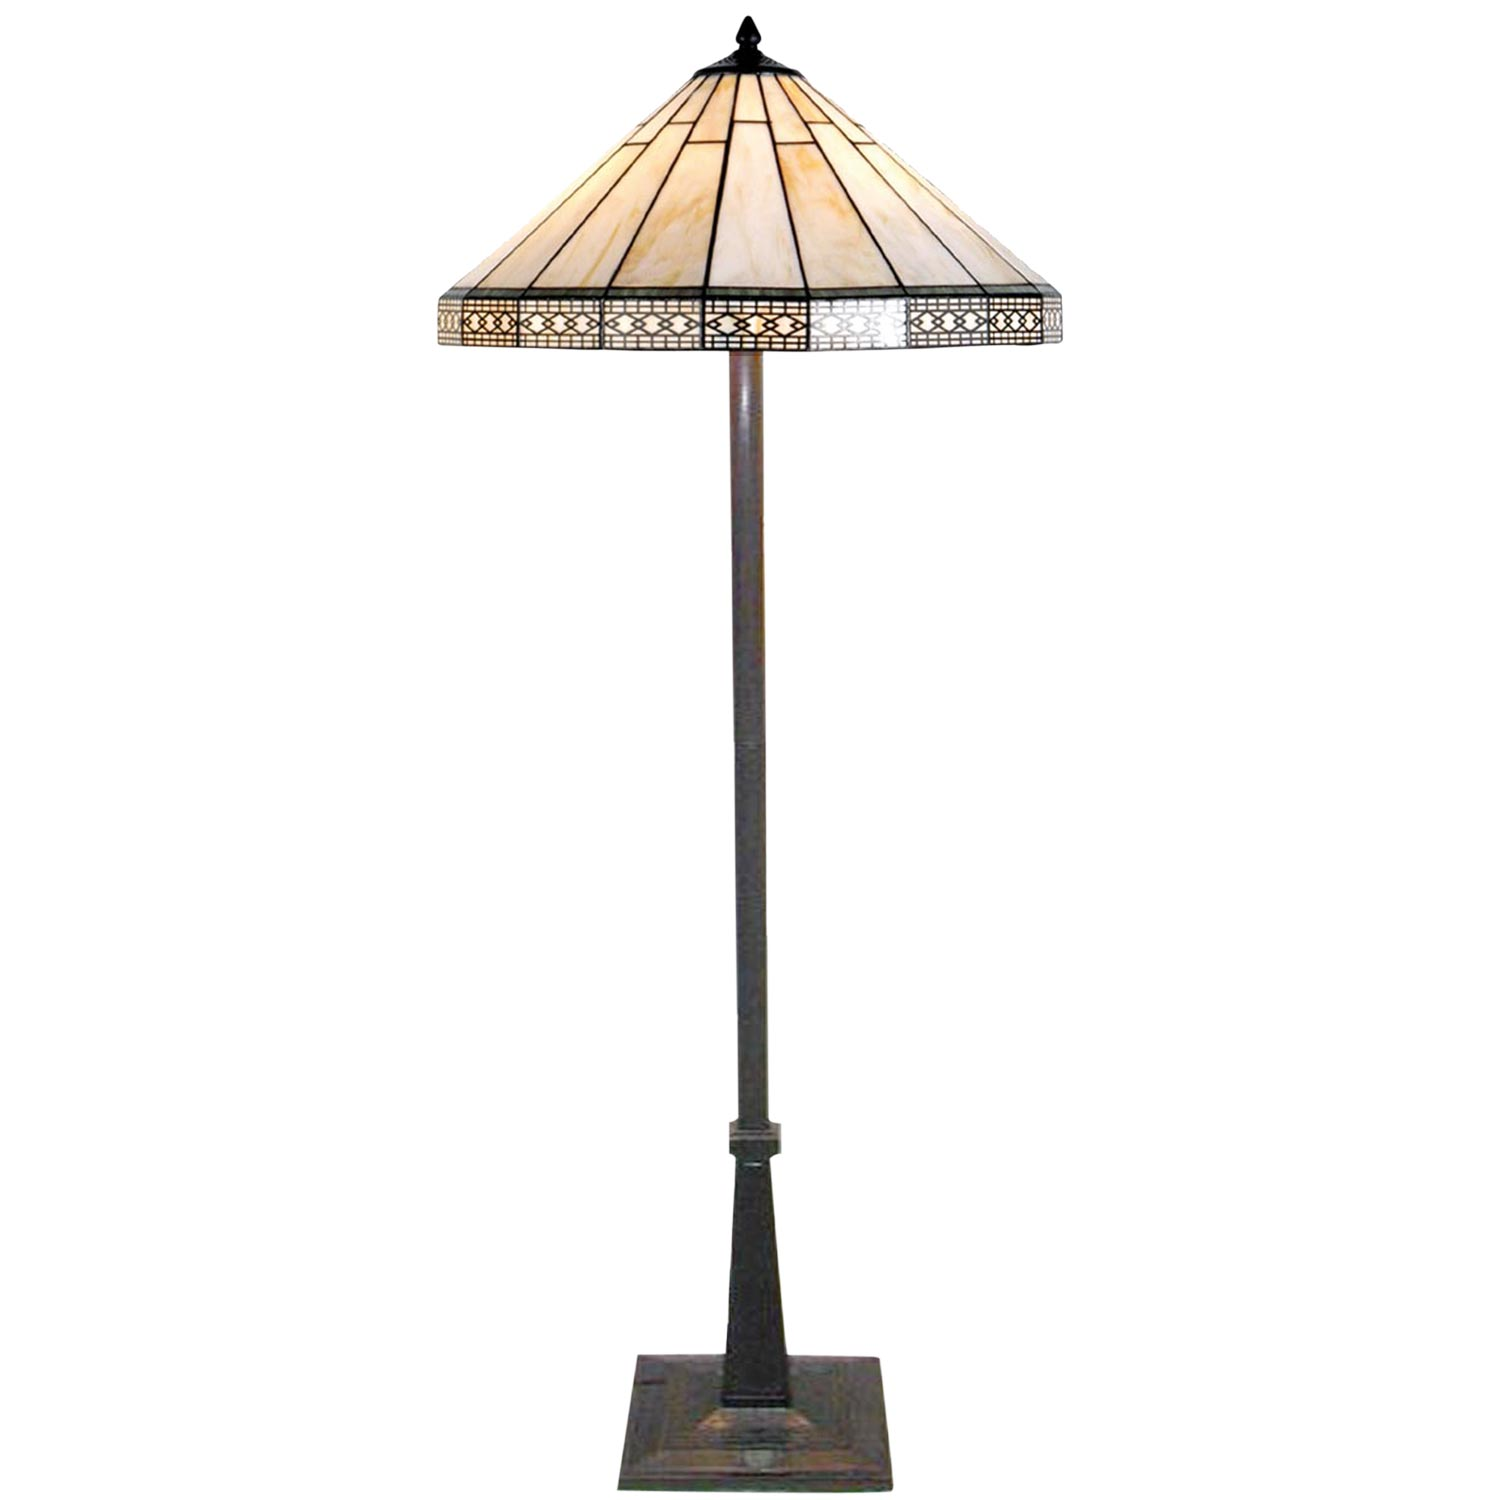 Clayre Eef 5ll 5564 Grosse Tiffany Stehlampe